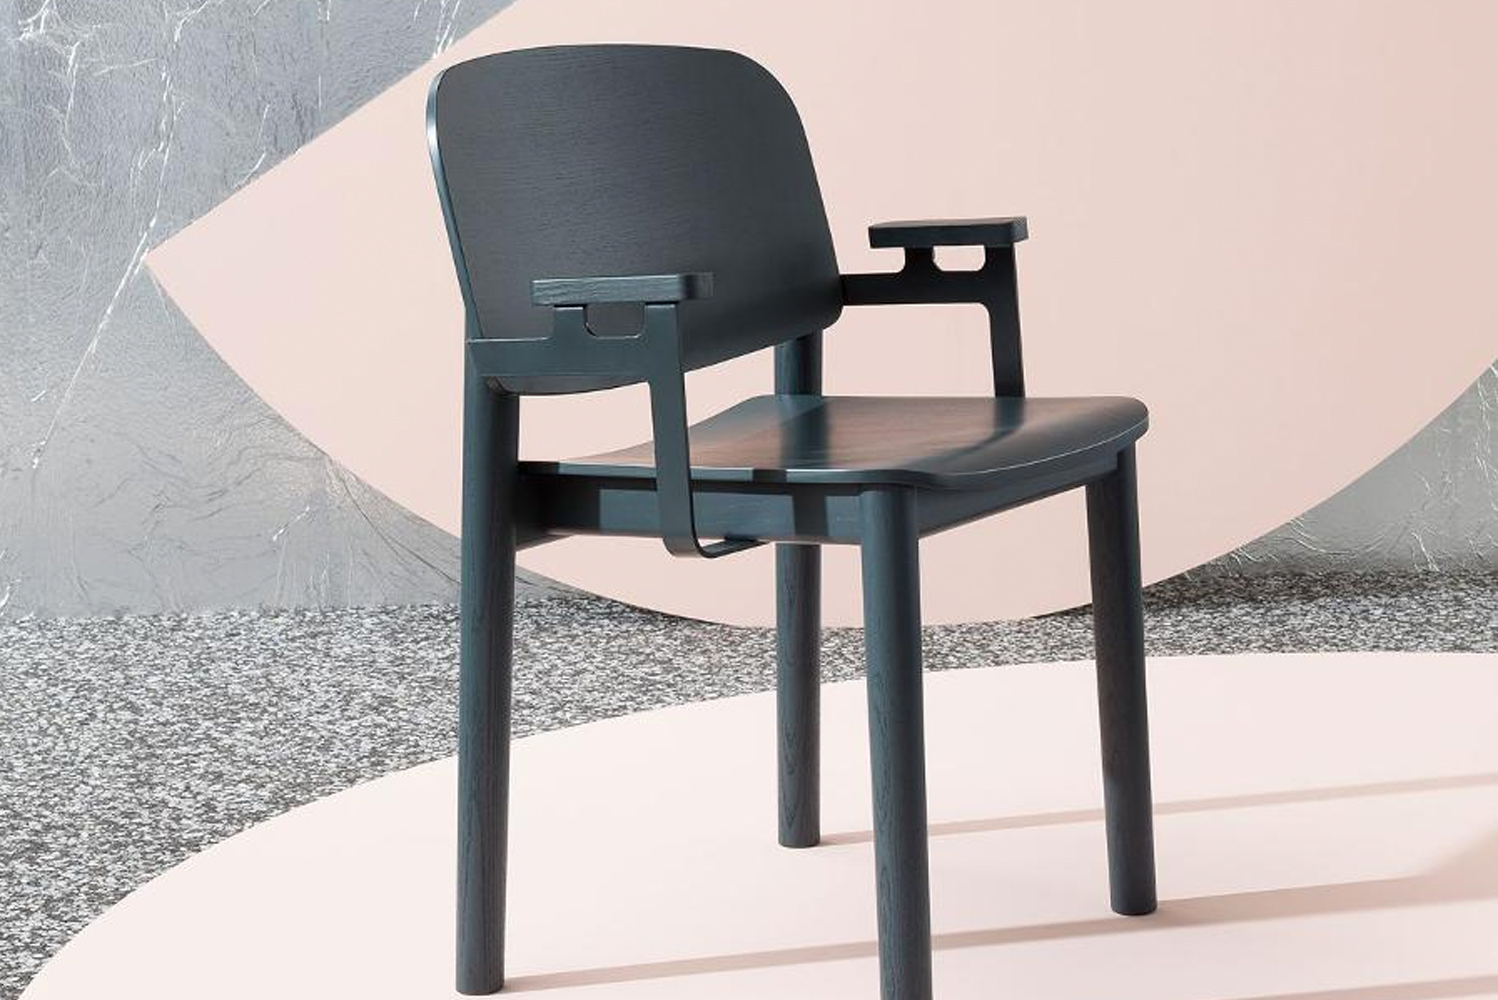 The chair is not named White for its color—there is a version in cream—but for its clean aesthetic.